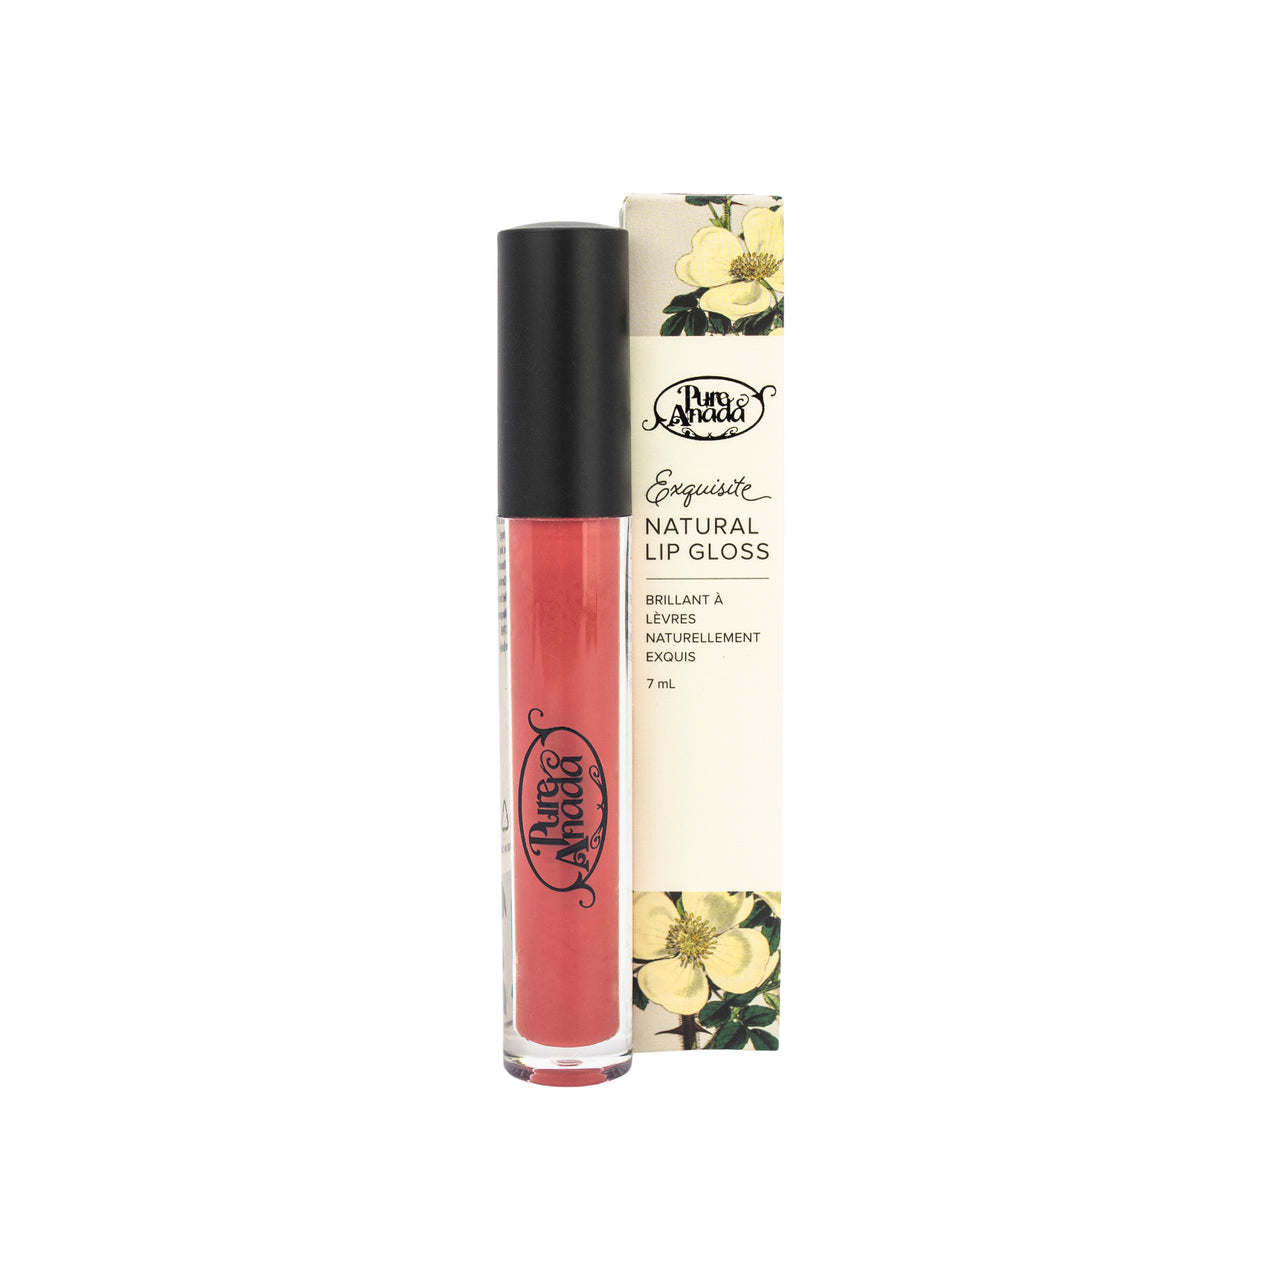 Pure Anada - Exquisite Natural Matte Lip Gloss Pomegranate All Things Being Eco Chilliwack Organic Makeup